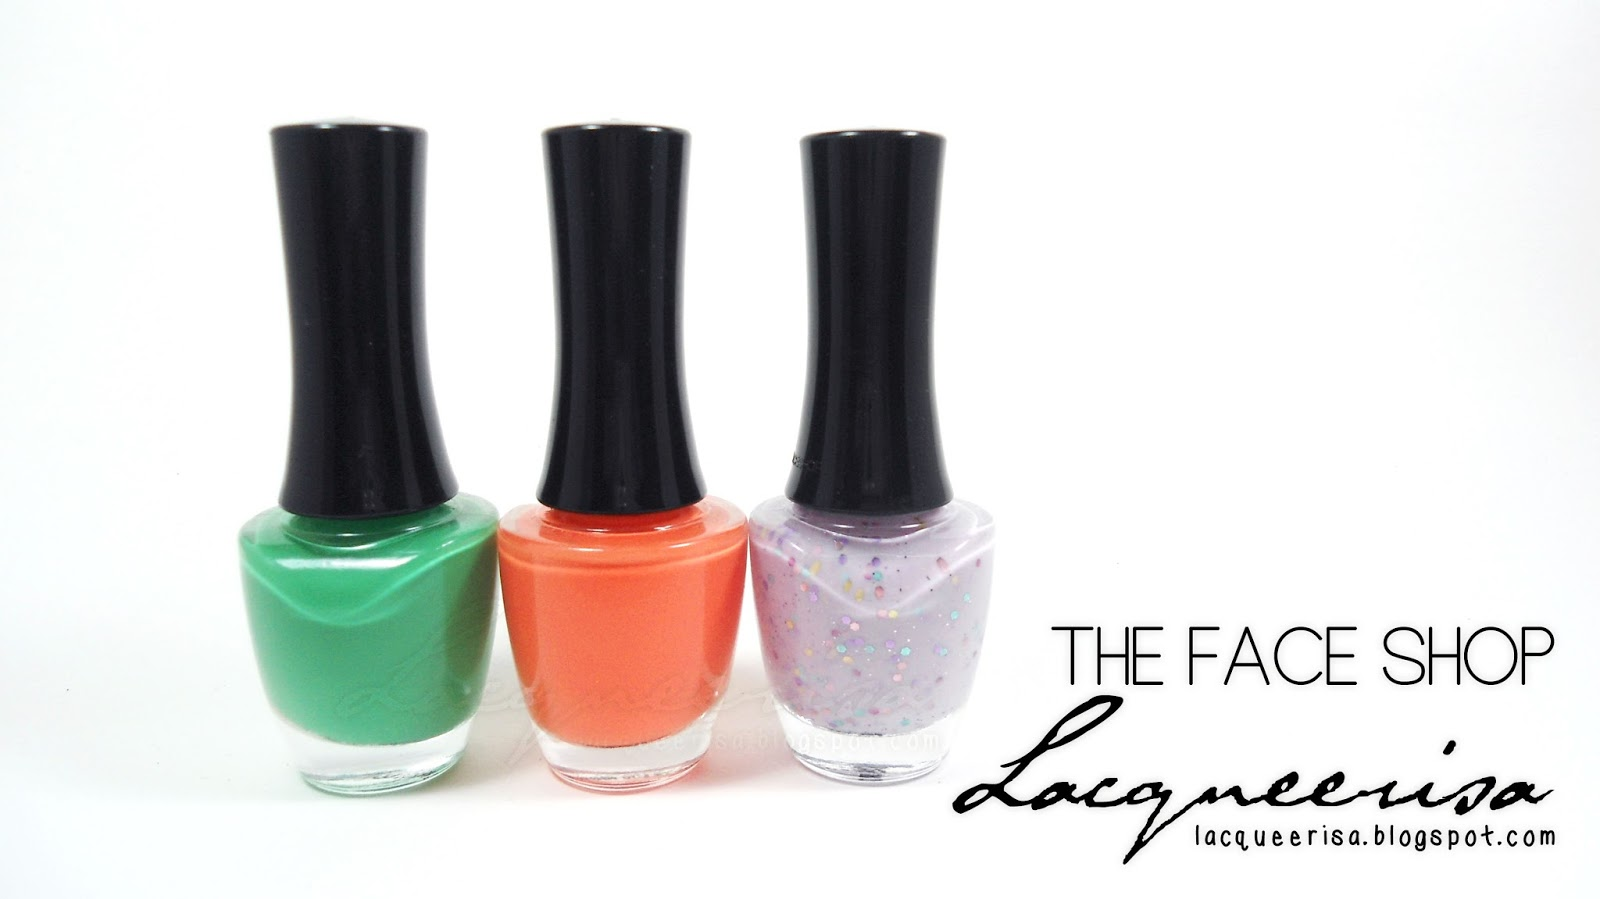 The Face Shop Nail Polishes